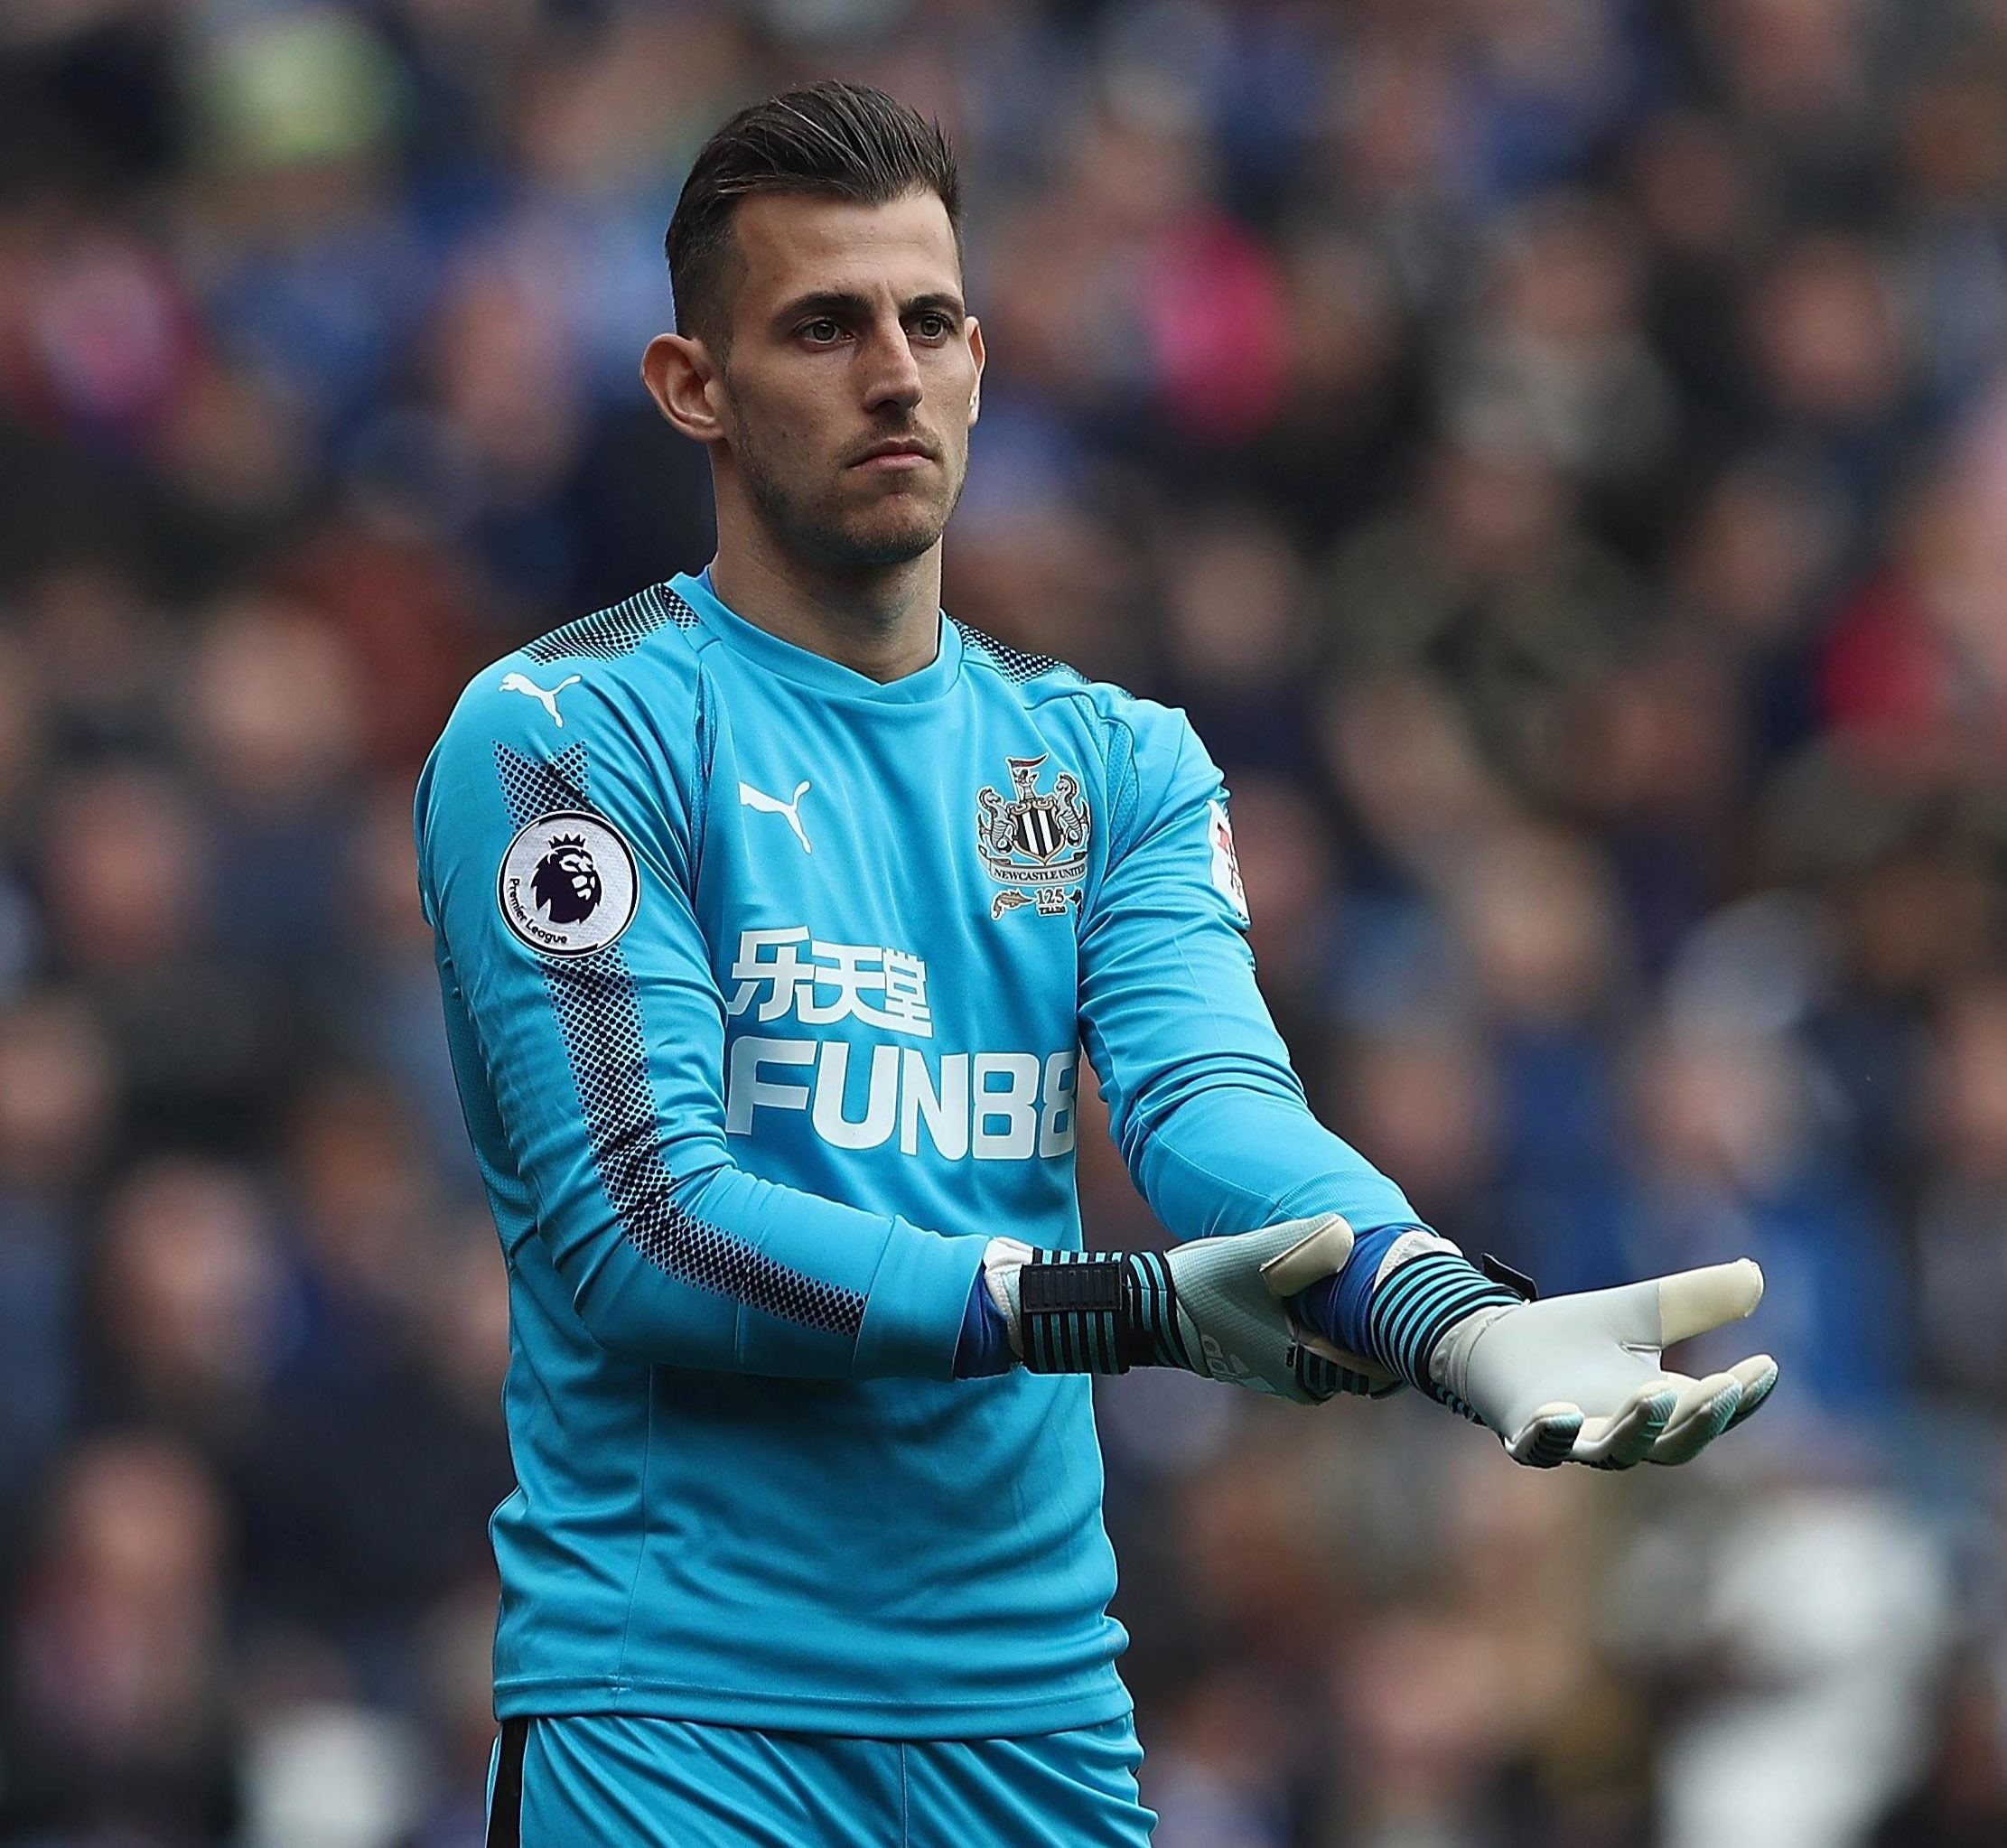 With their Premier League survival looking secured, Martin Dubravka is set to stick around for a while longer at St James' Park